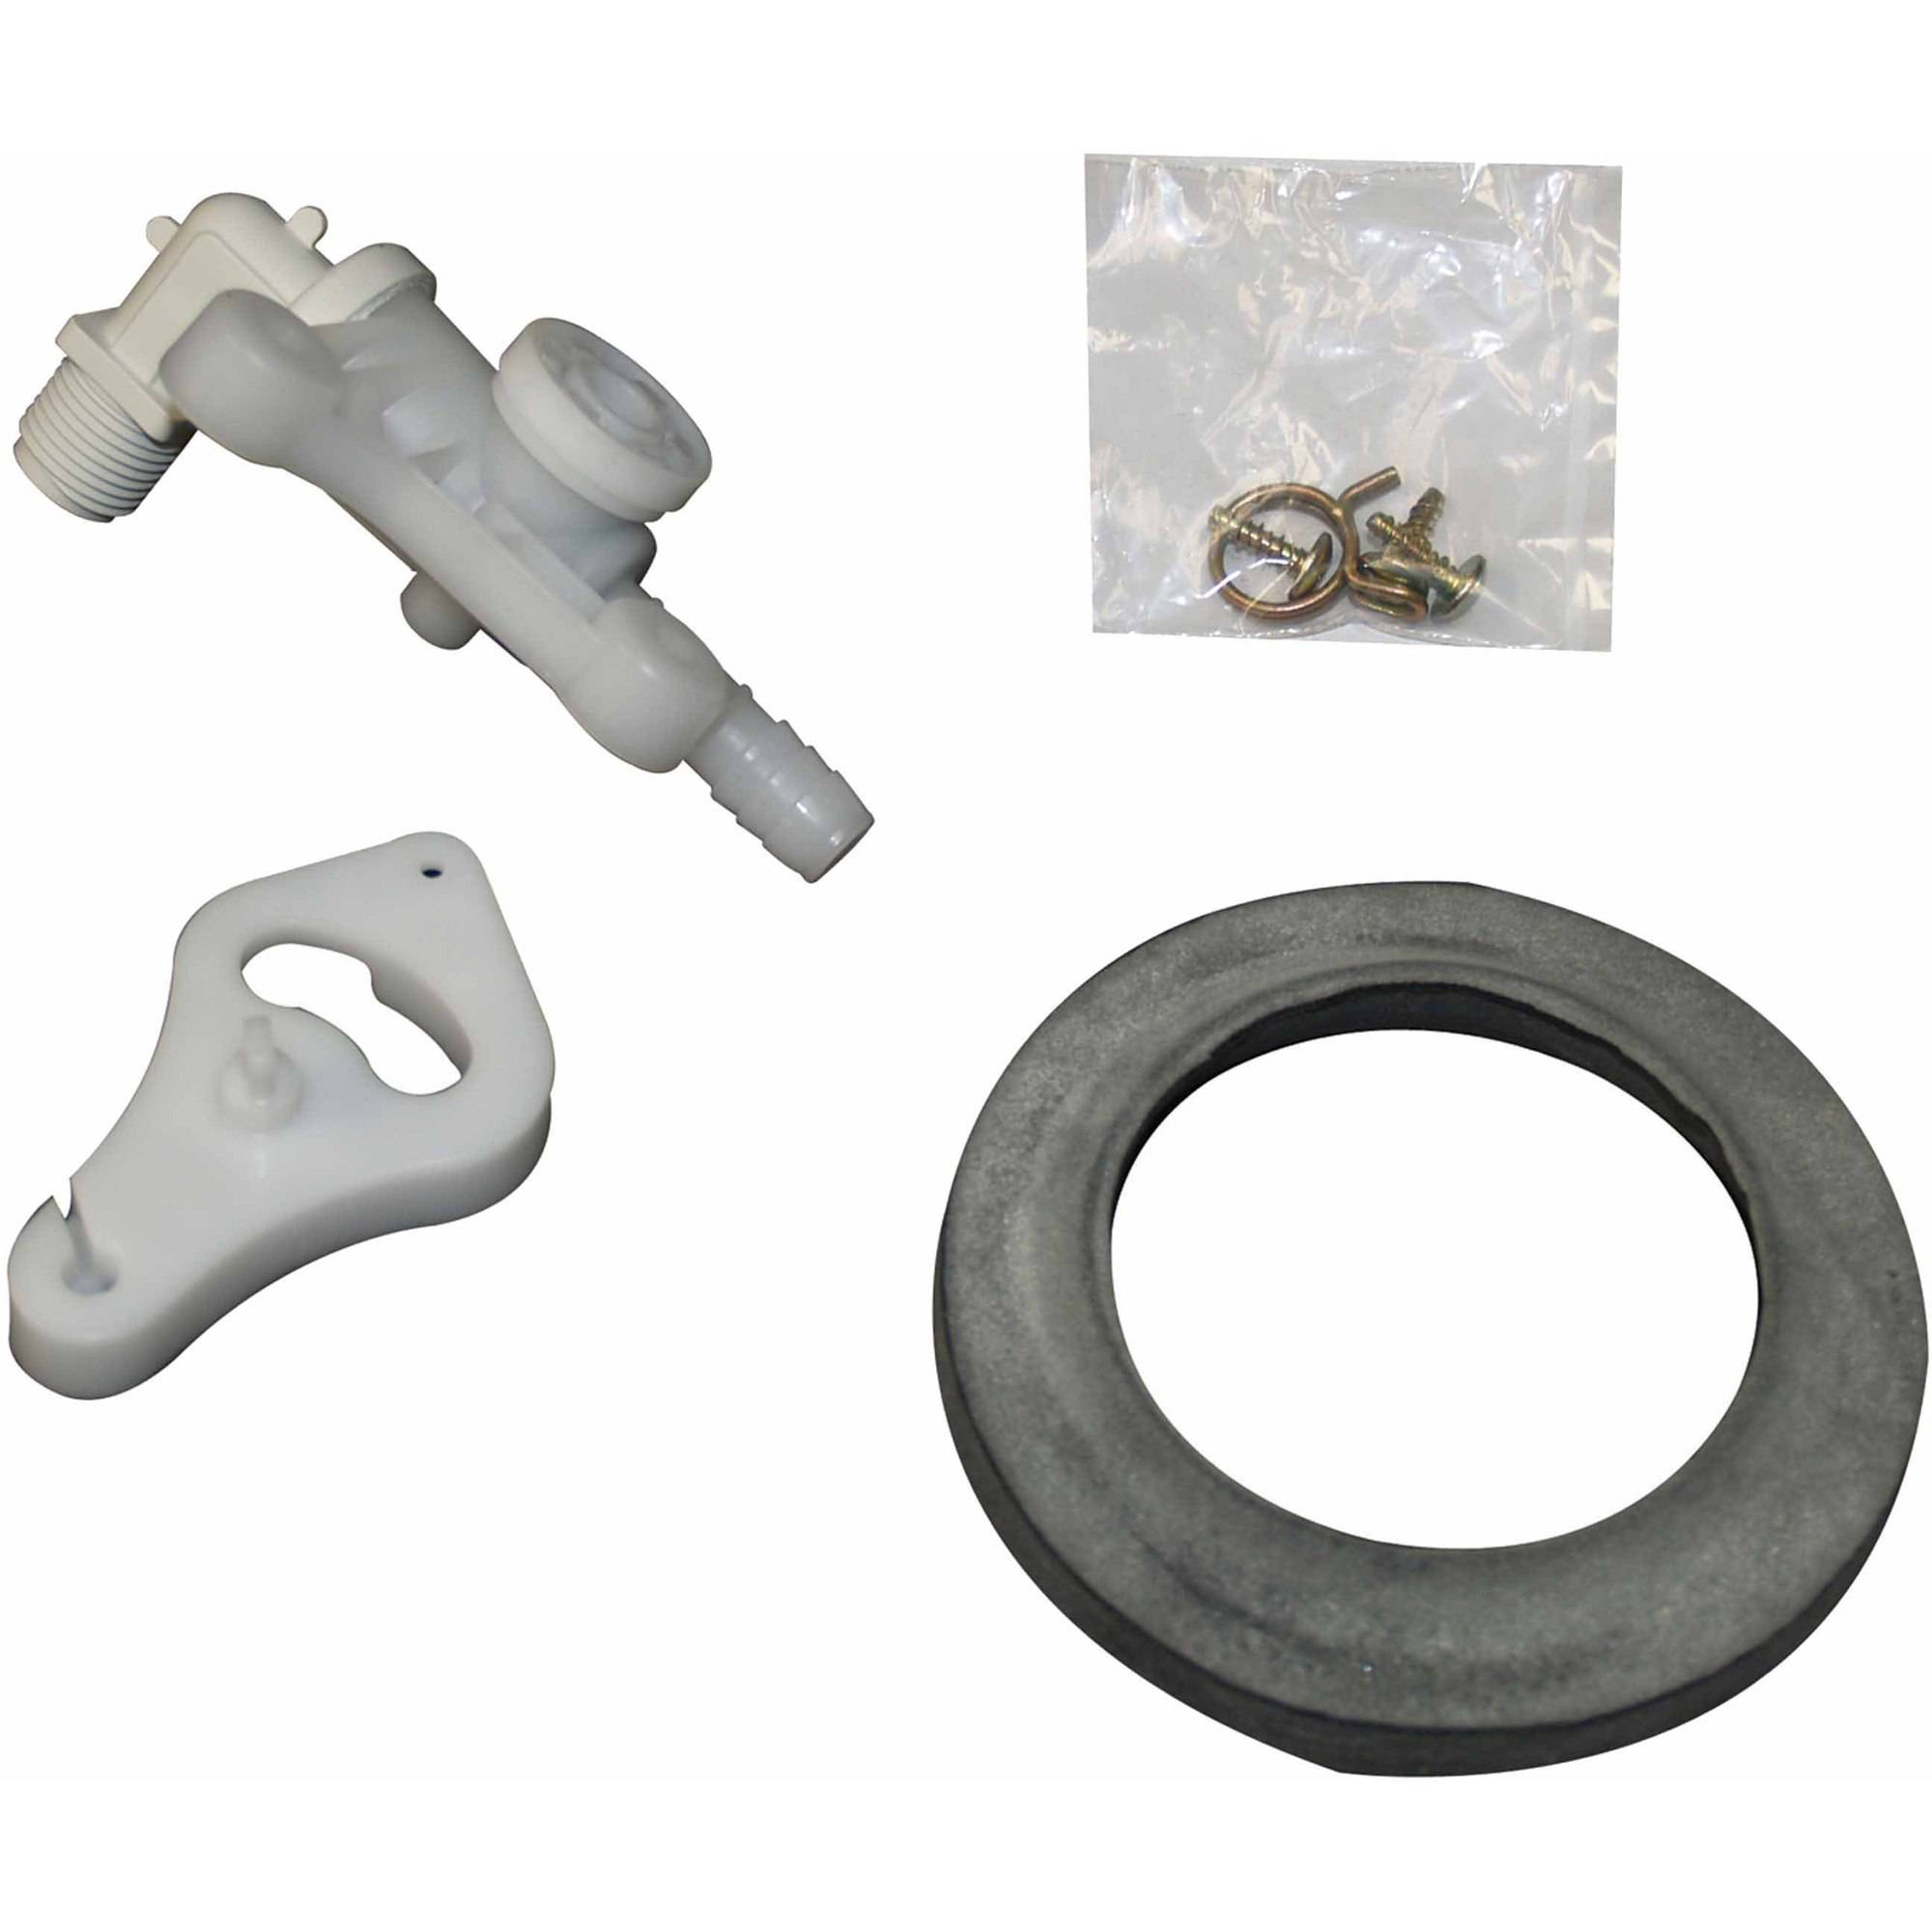 Thetford Corp Rv Replacement Parts Toilet Breakdown Together With Diagram